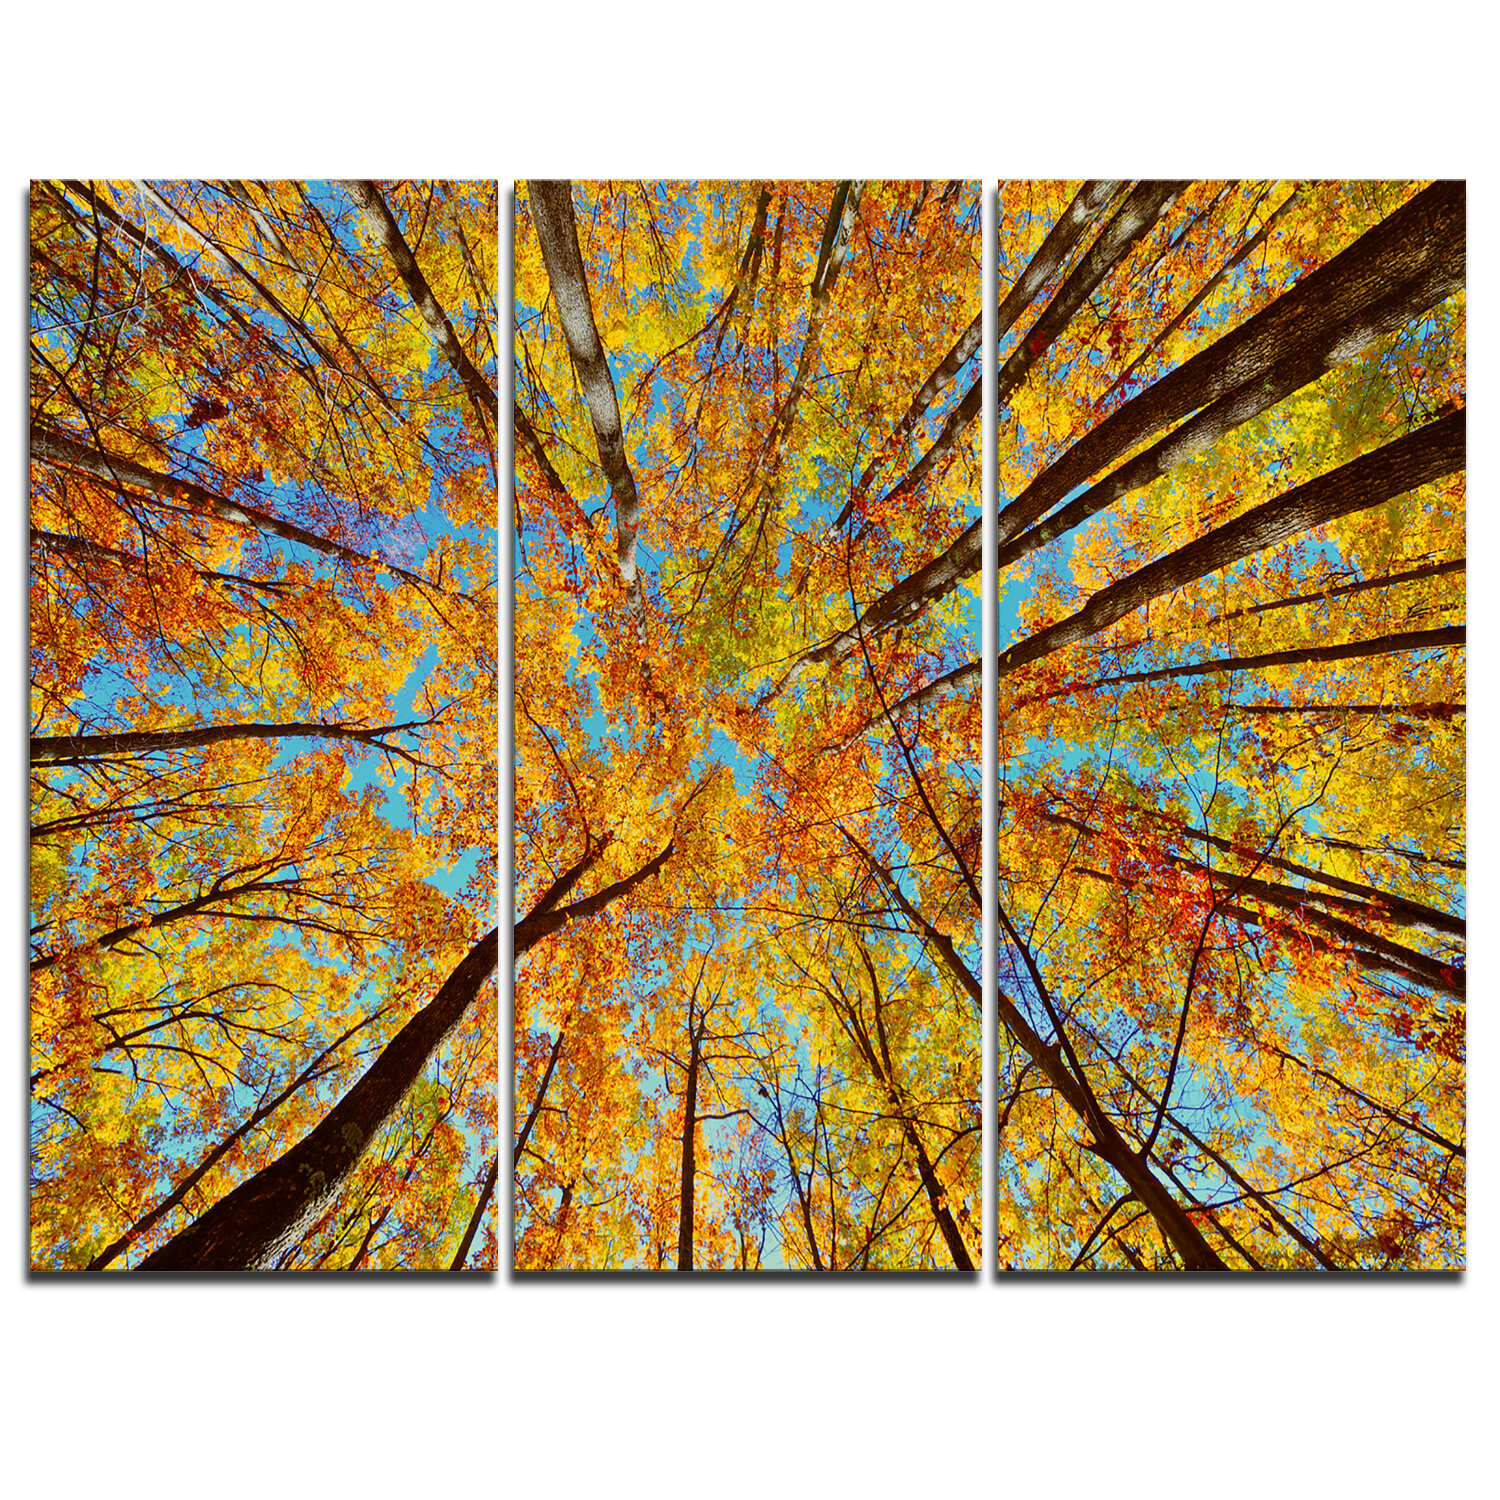 Designart Tree Tops In Autumn Forest 3 Piece Graphic Art On Wrapped Canvas Set Wayfair